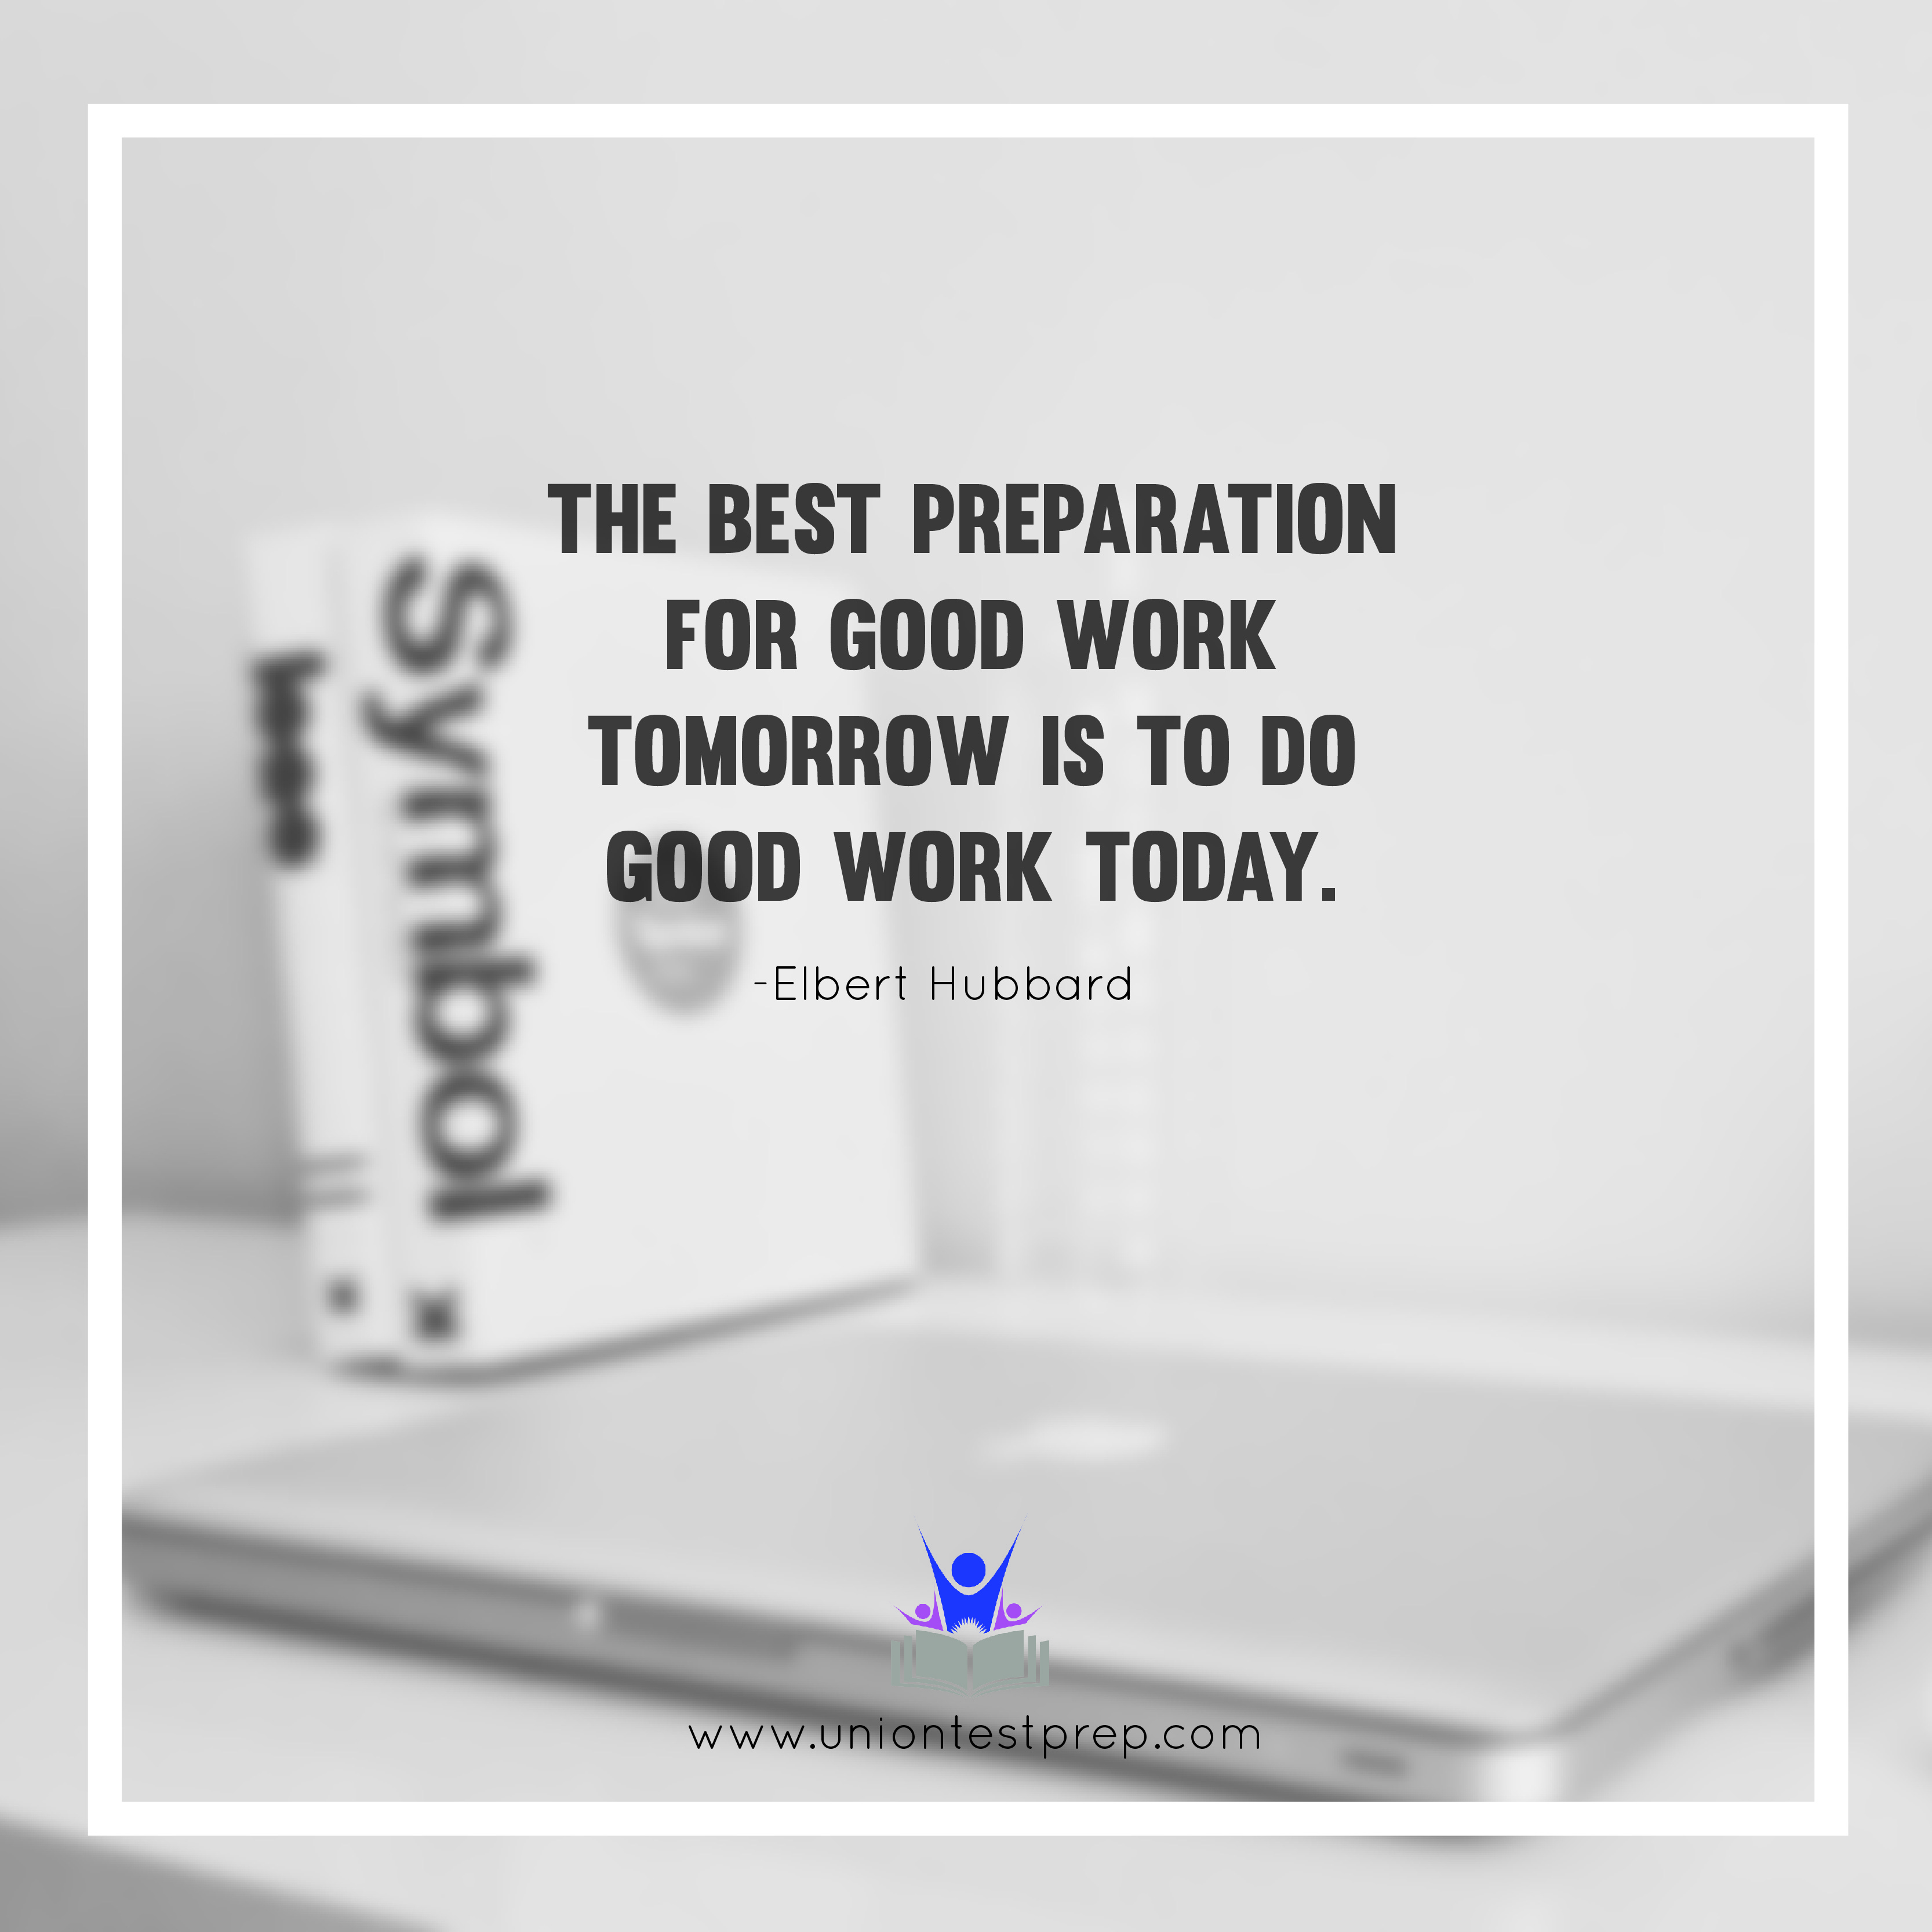 The best preparation for good work tomorrow is good work today quote